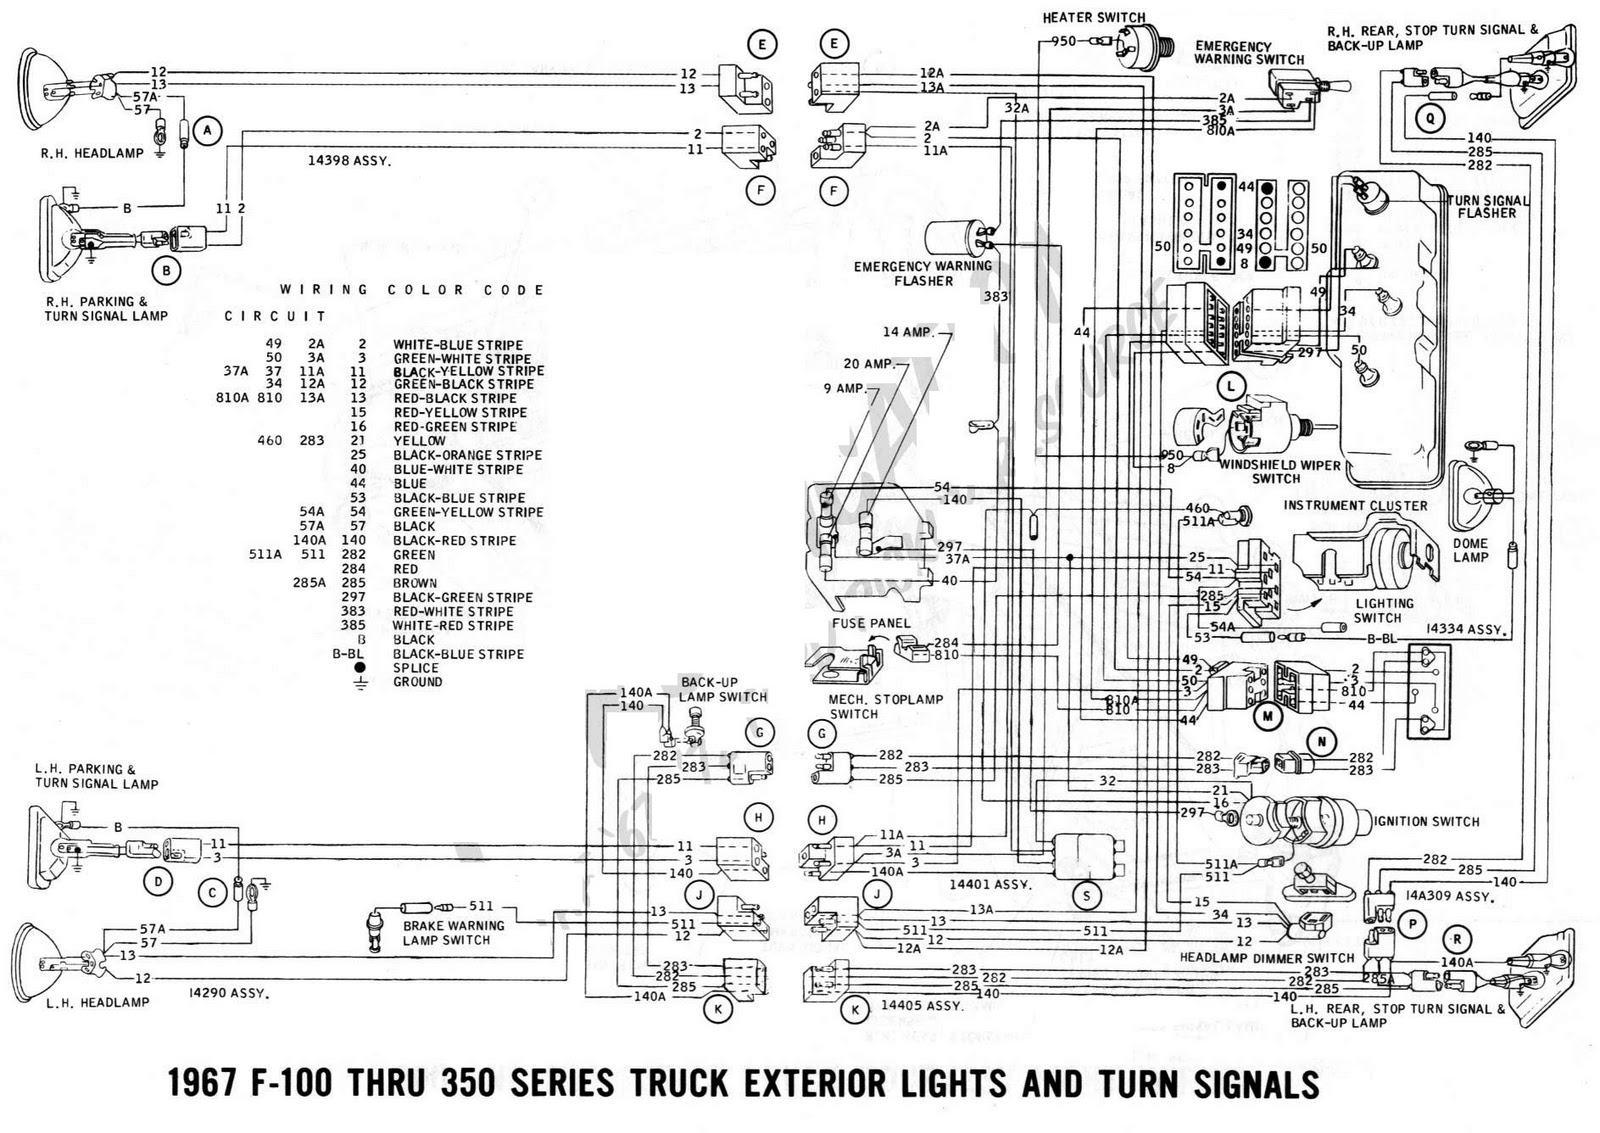 1985 Chevy S10 Distributor Module Wiring Harness as well Showthread as well 1969 Mustang Instrument Cluster Wiring Diagram together with XK2j 18083 likewise Gm Fuse Box Shunt. on 1956 chevy ignition switch diagram